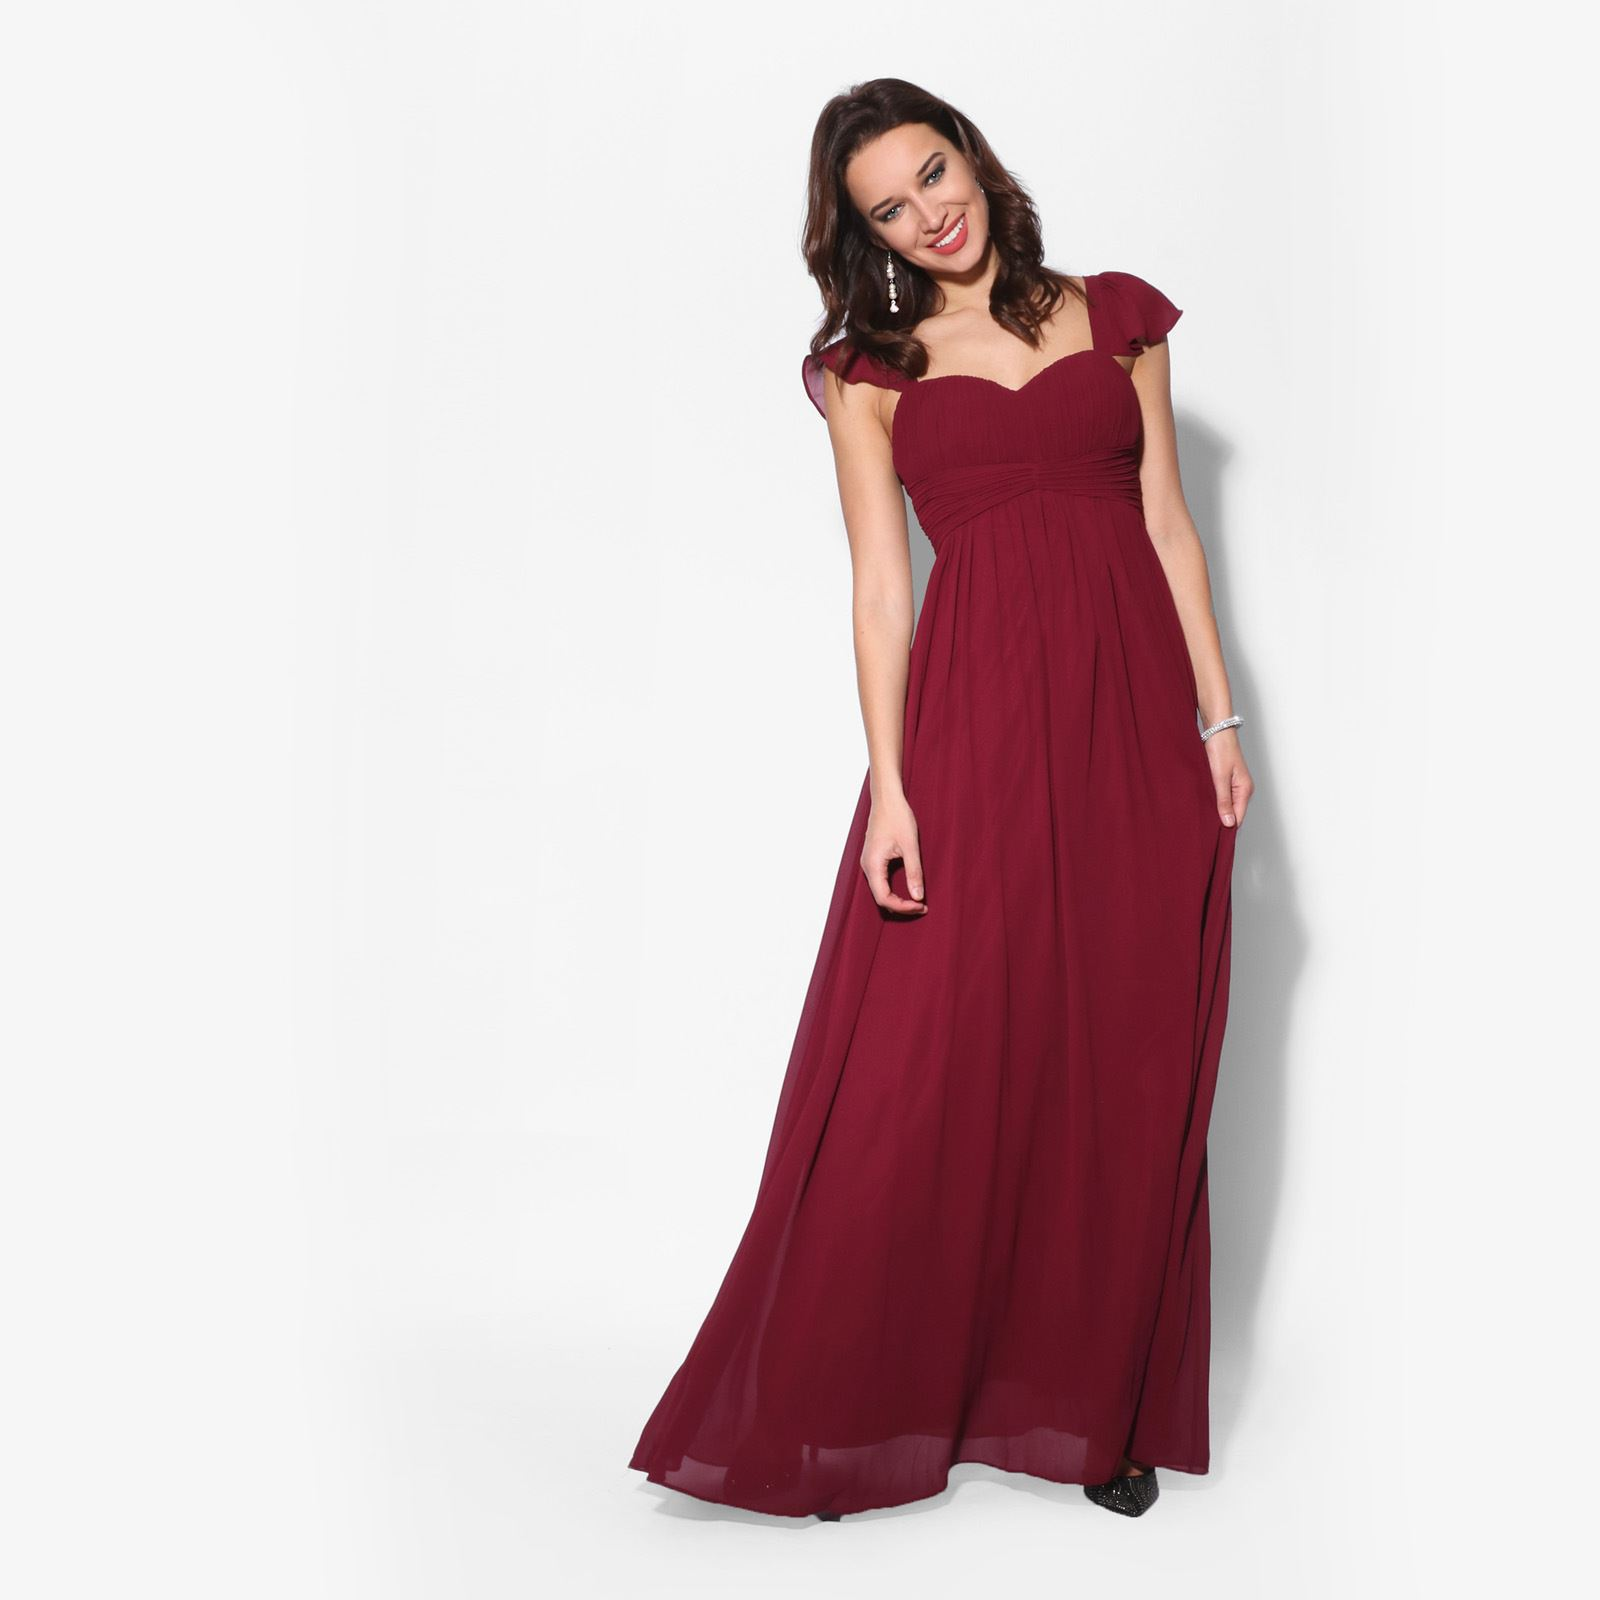 7a672a5af4a2 Women Frill Sleeve Maxi Dress Ladies Chiffon Long Cocktail Party Evening  Gown